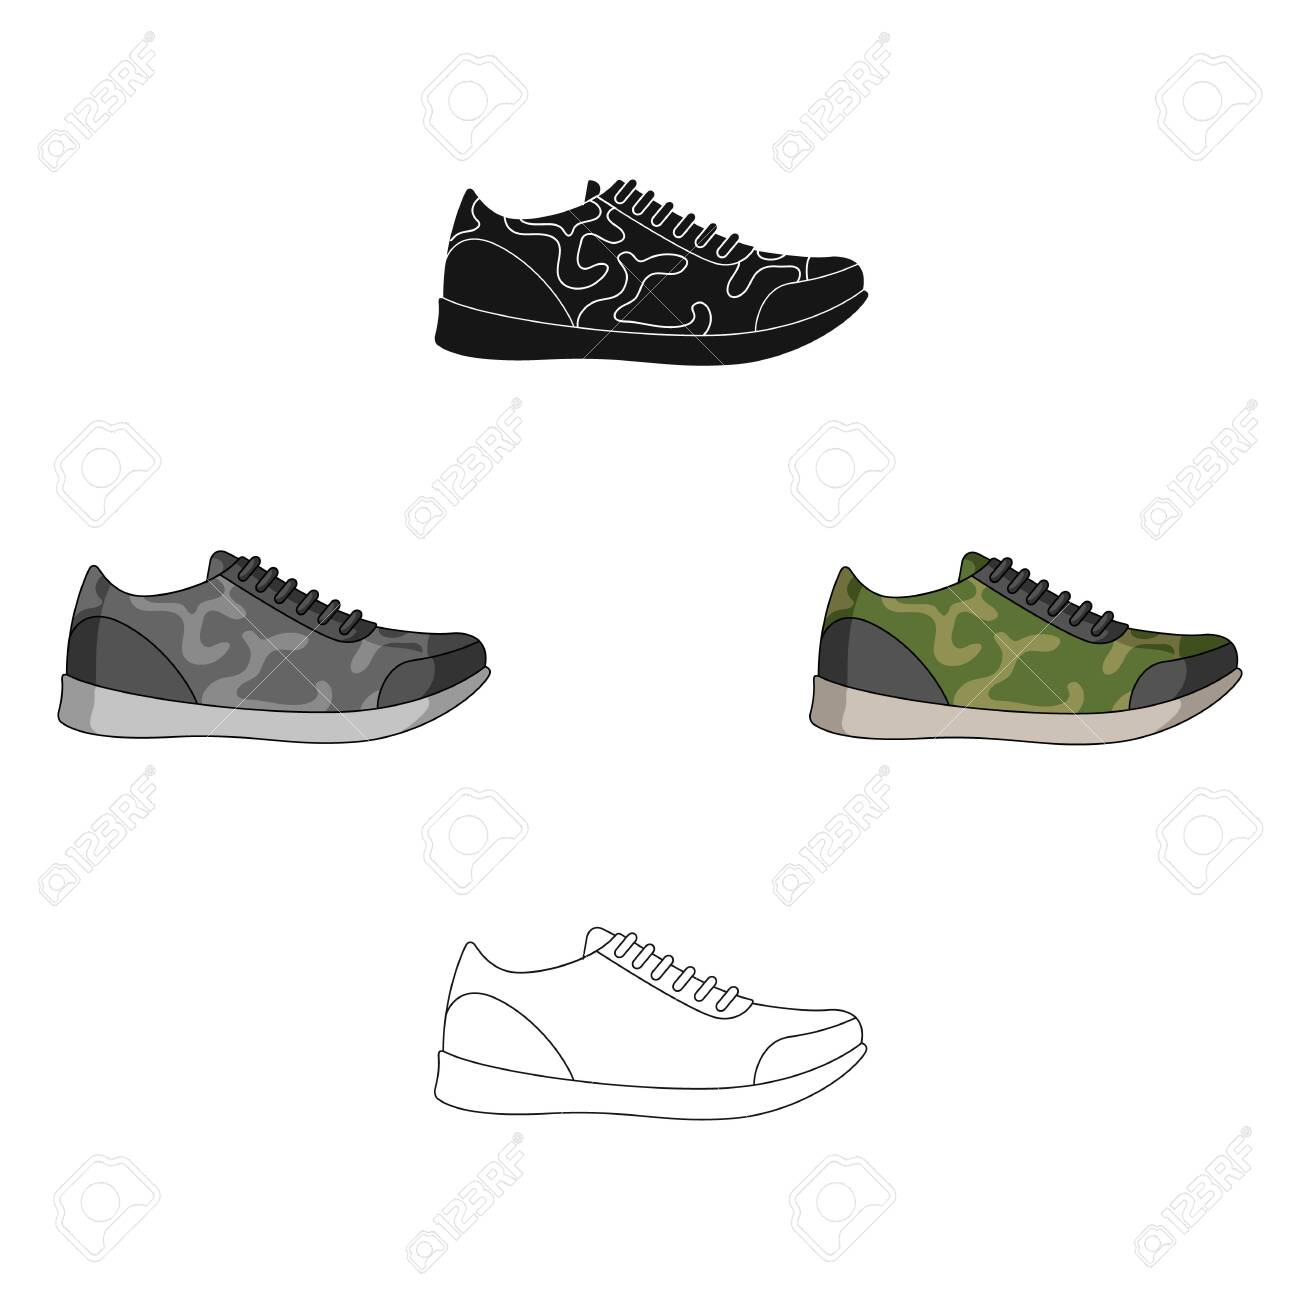 Rag camouflage sneakers for everyday wear.Different shoes single icon in cartoon,black style vector symbol stock illustration. - 124278508